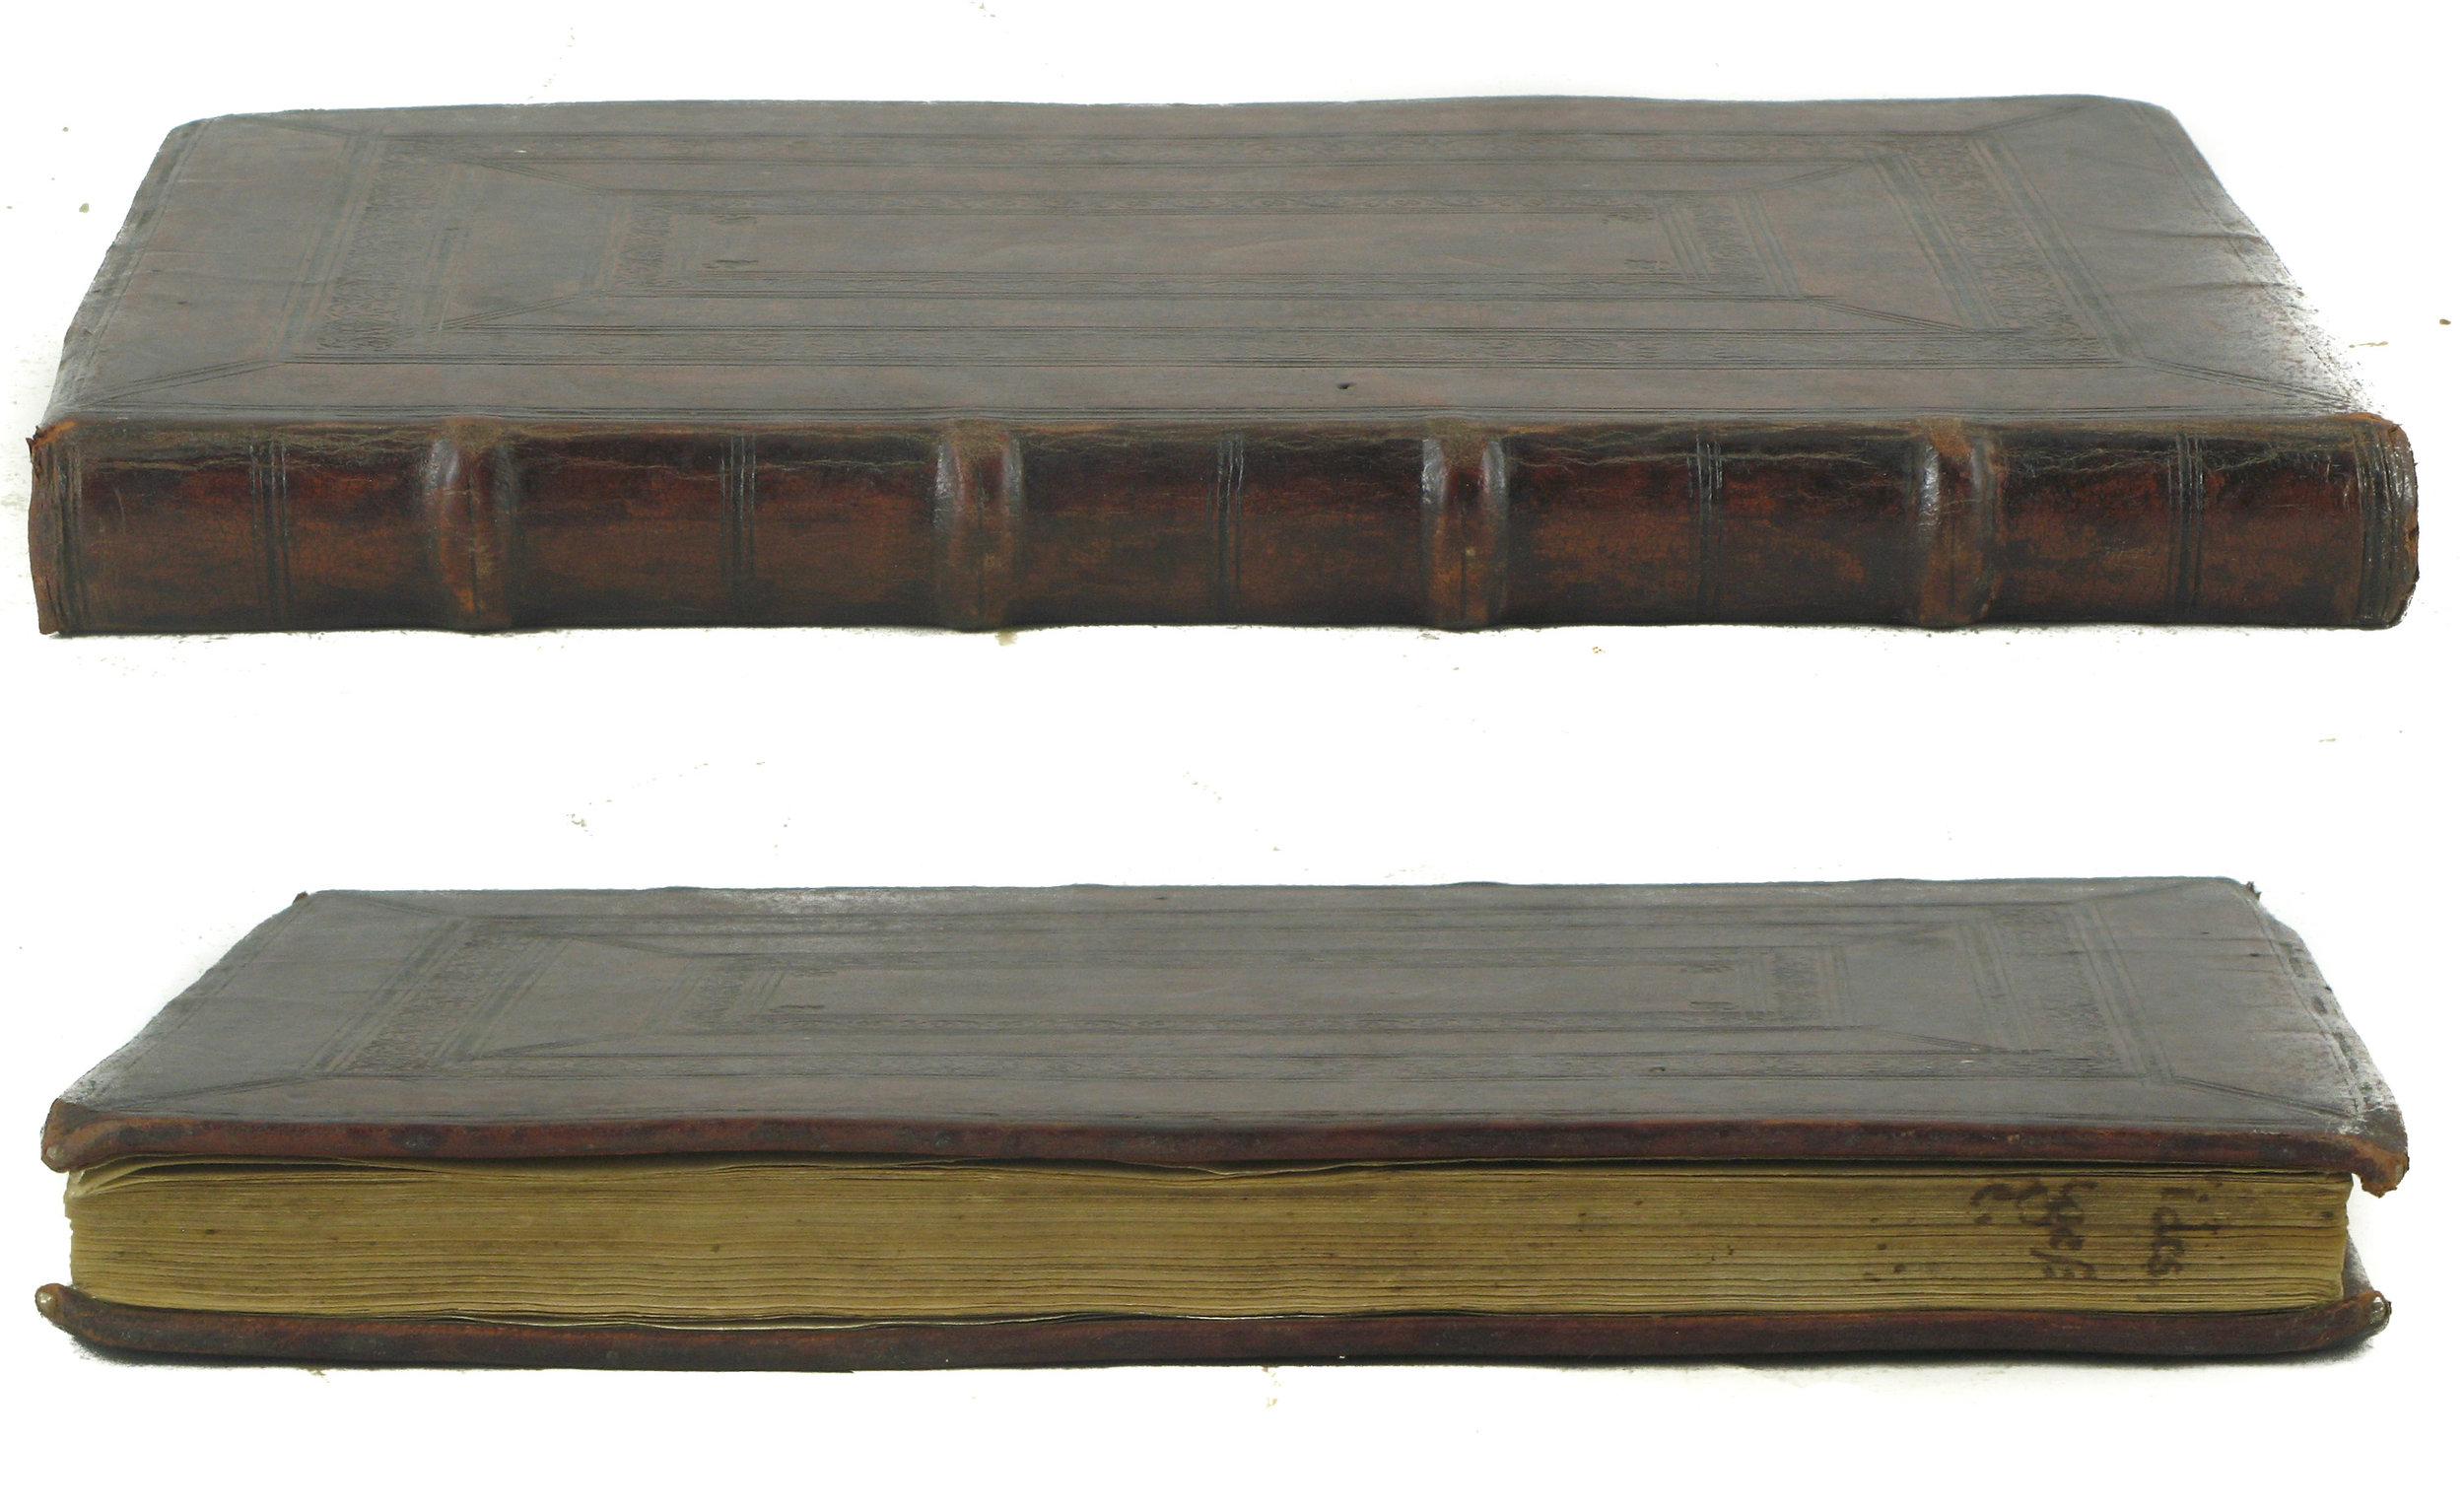 period style spine and foredge.3mb.jpg